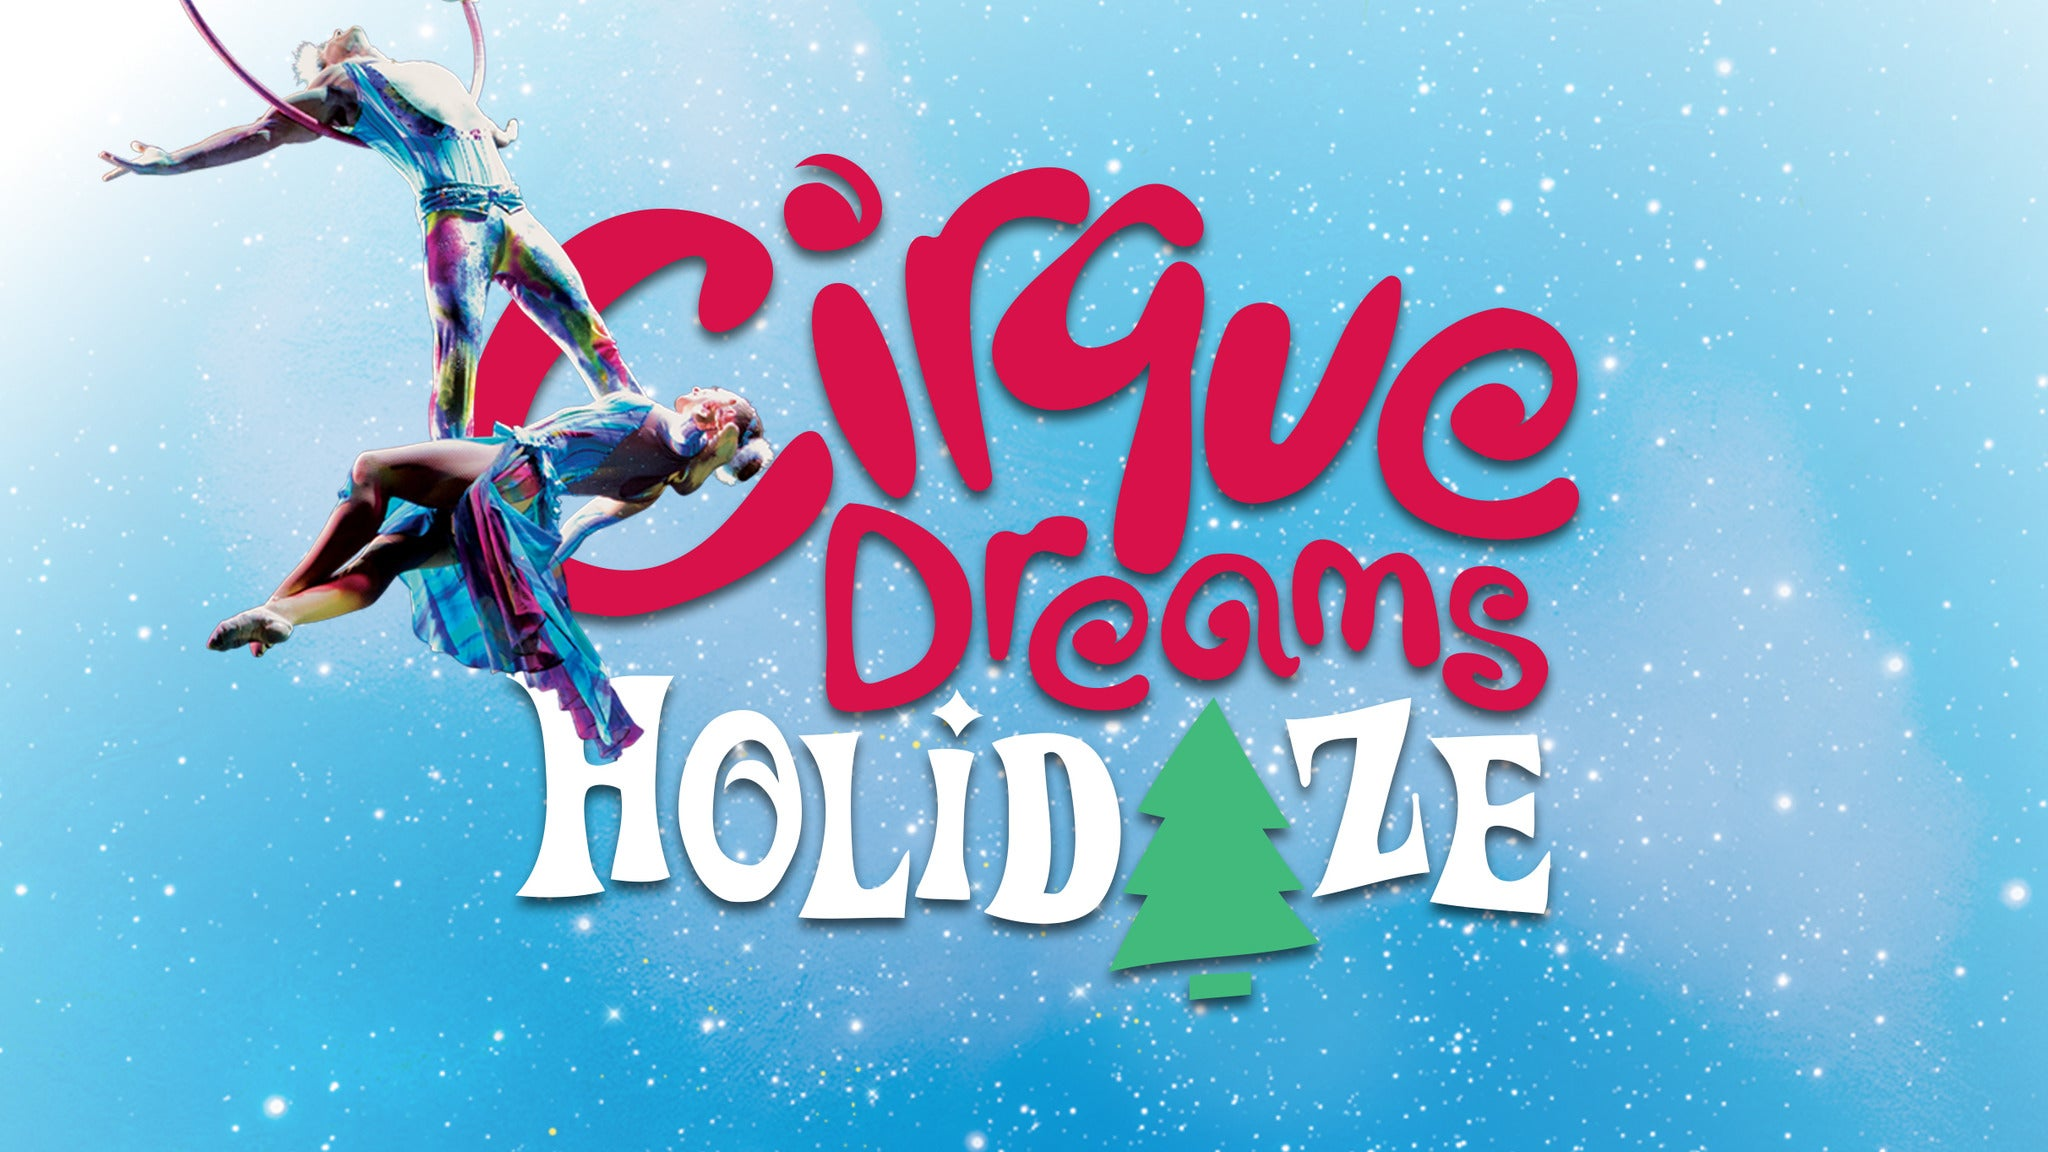 Cirque Dreams Holidaze (Touring) at Dolby Theatre